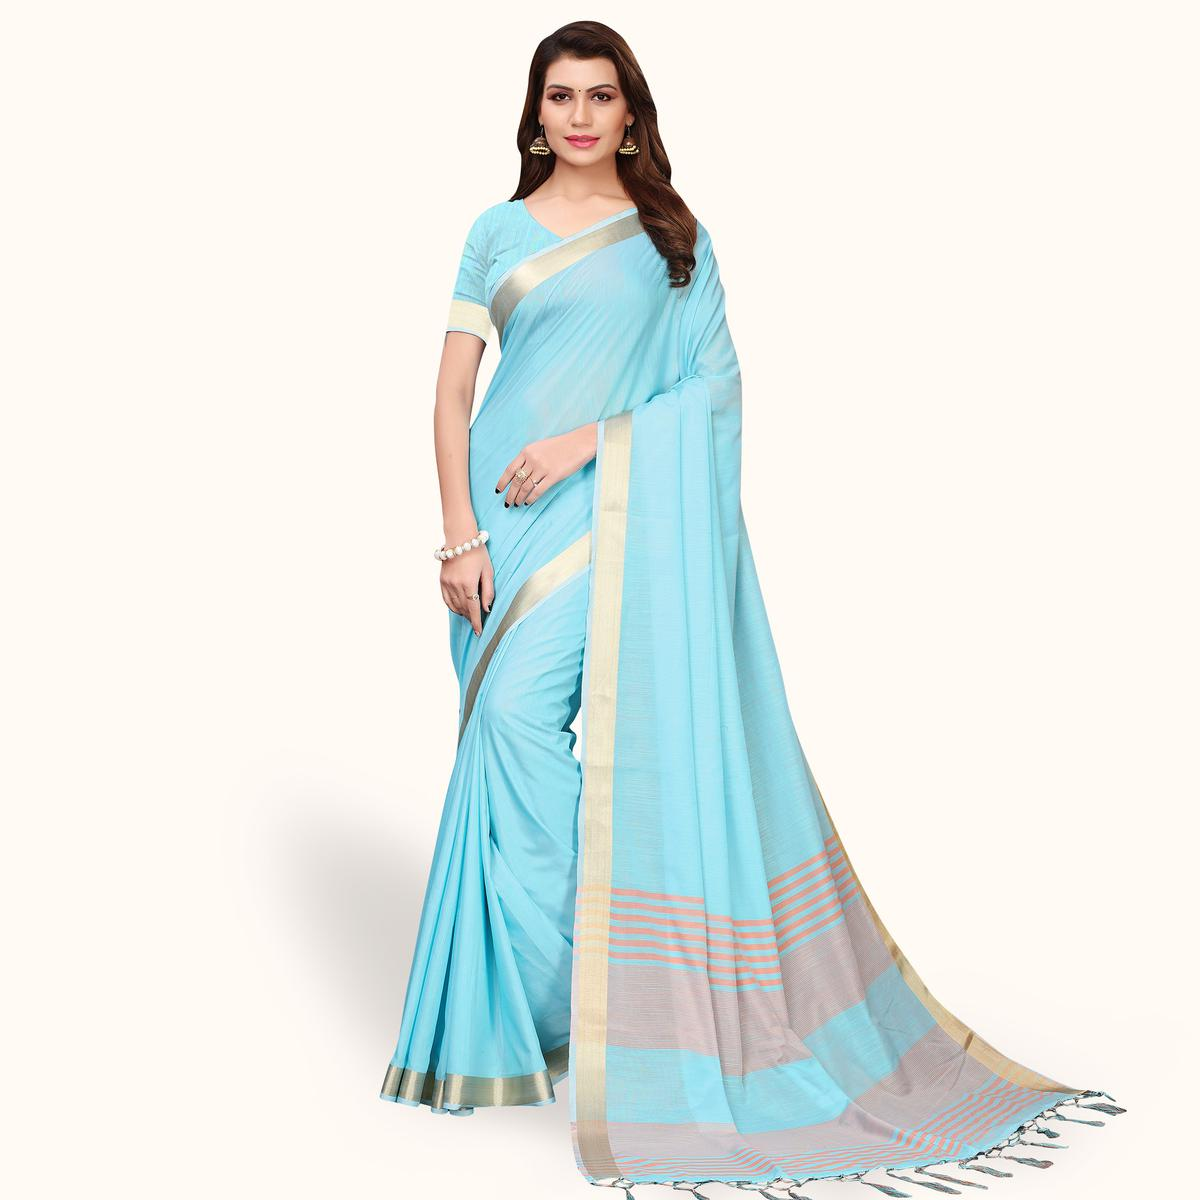 Pleasance Sky Blue Colored Festive Wear Cotton Linen Saree